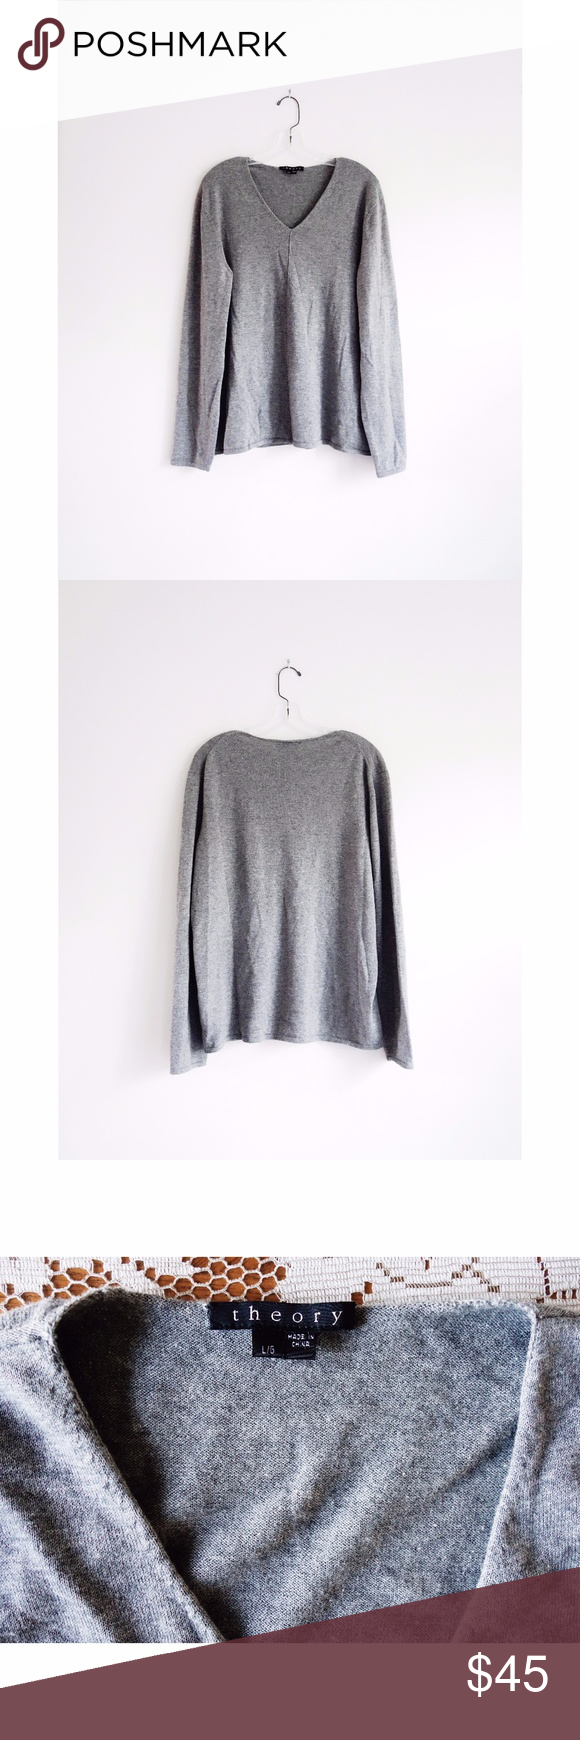 Theory Grey Cotton Cashmere Sweater sz L | Cashmere sweaters ...